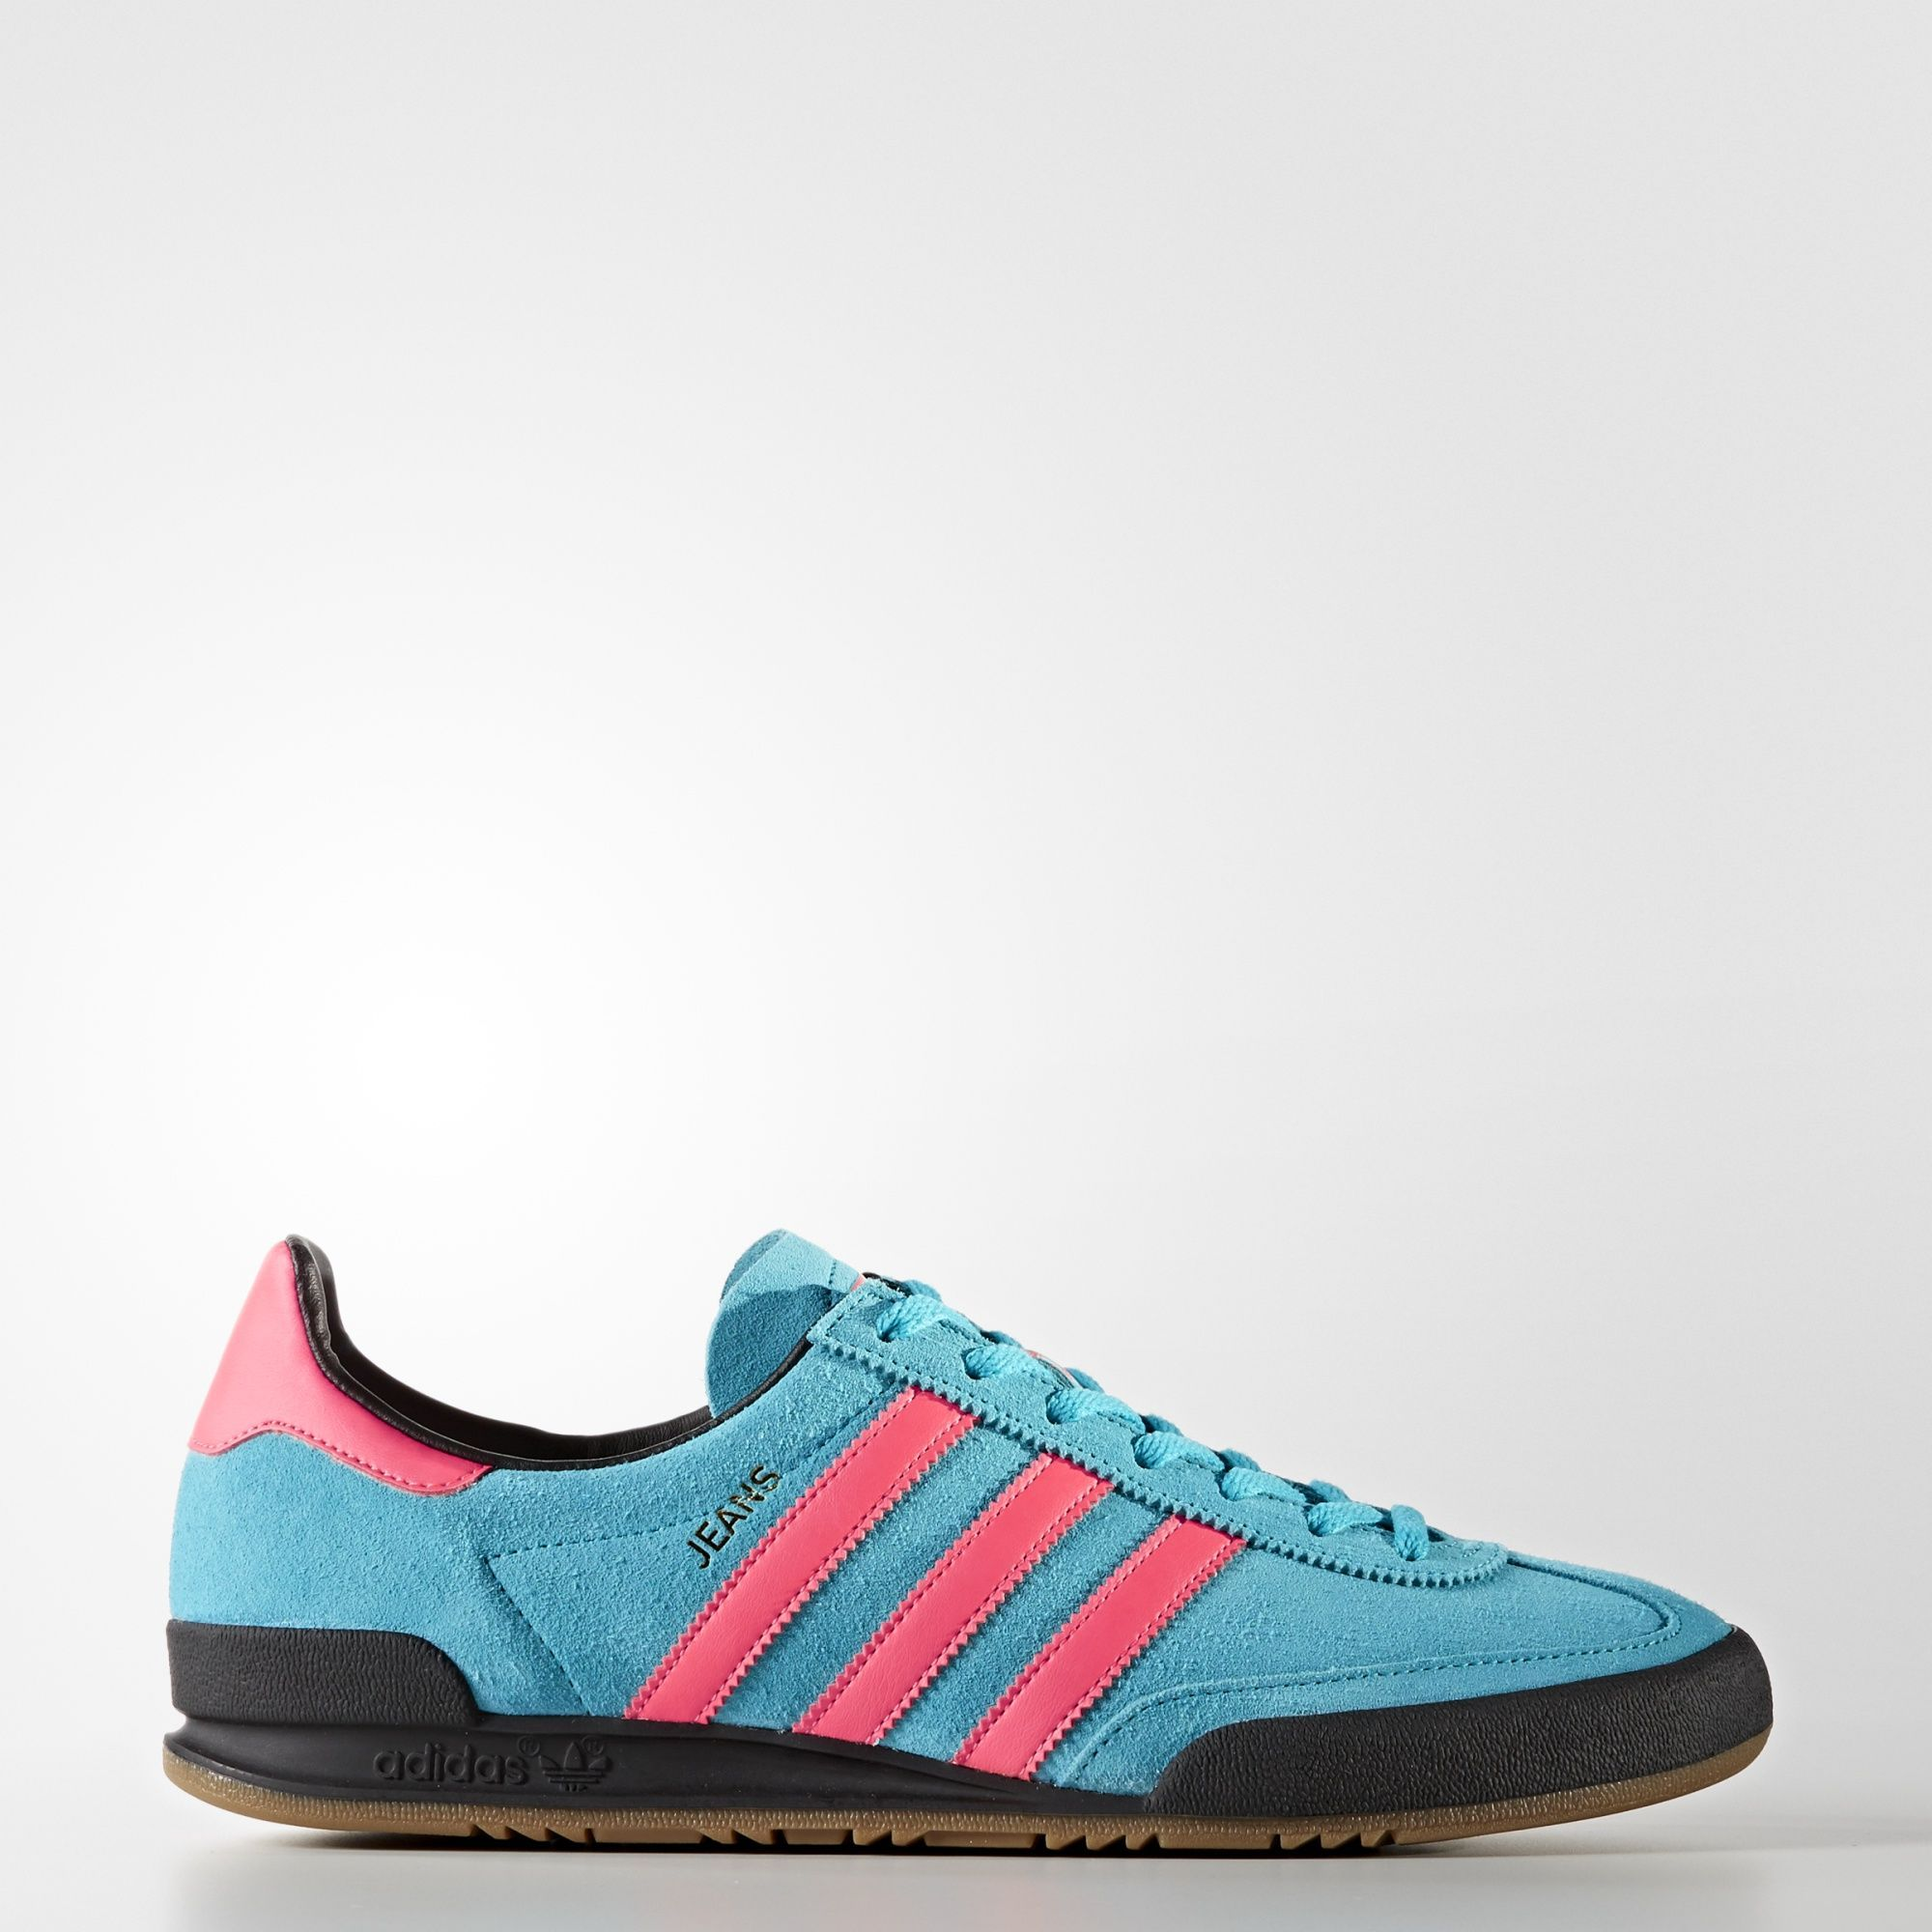 reputable site 5938f 203ff Find this Pin and more on sneakers by levan7117.